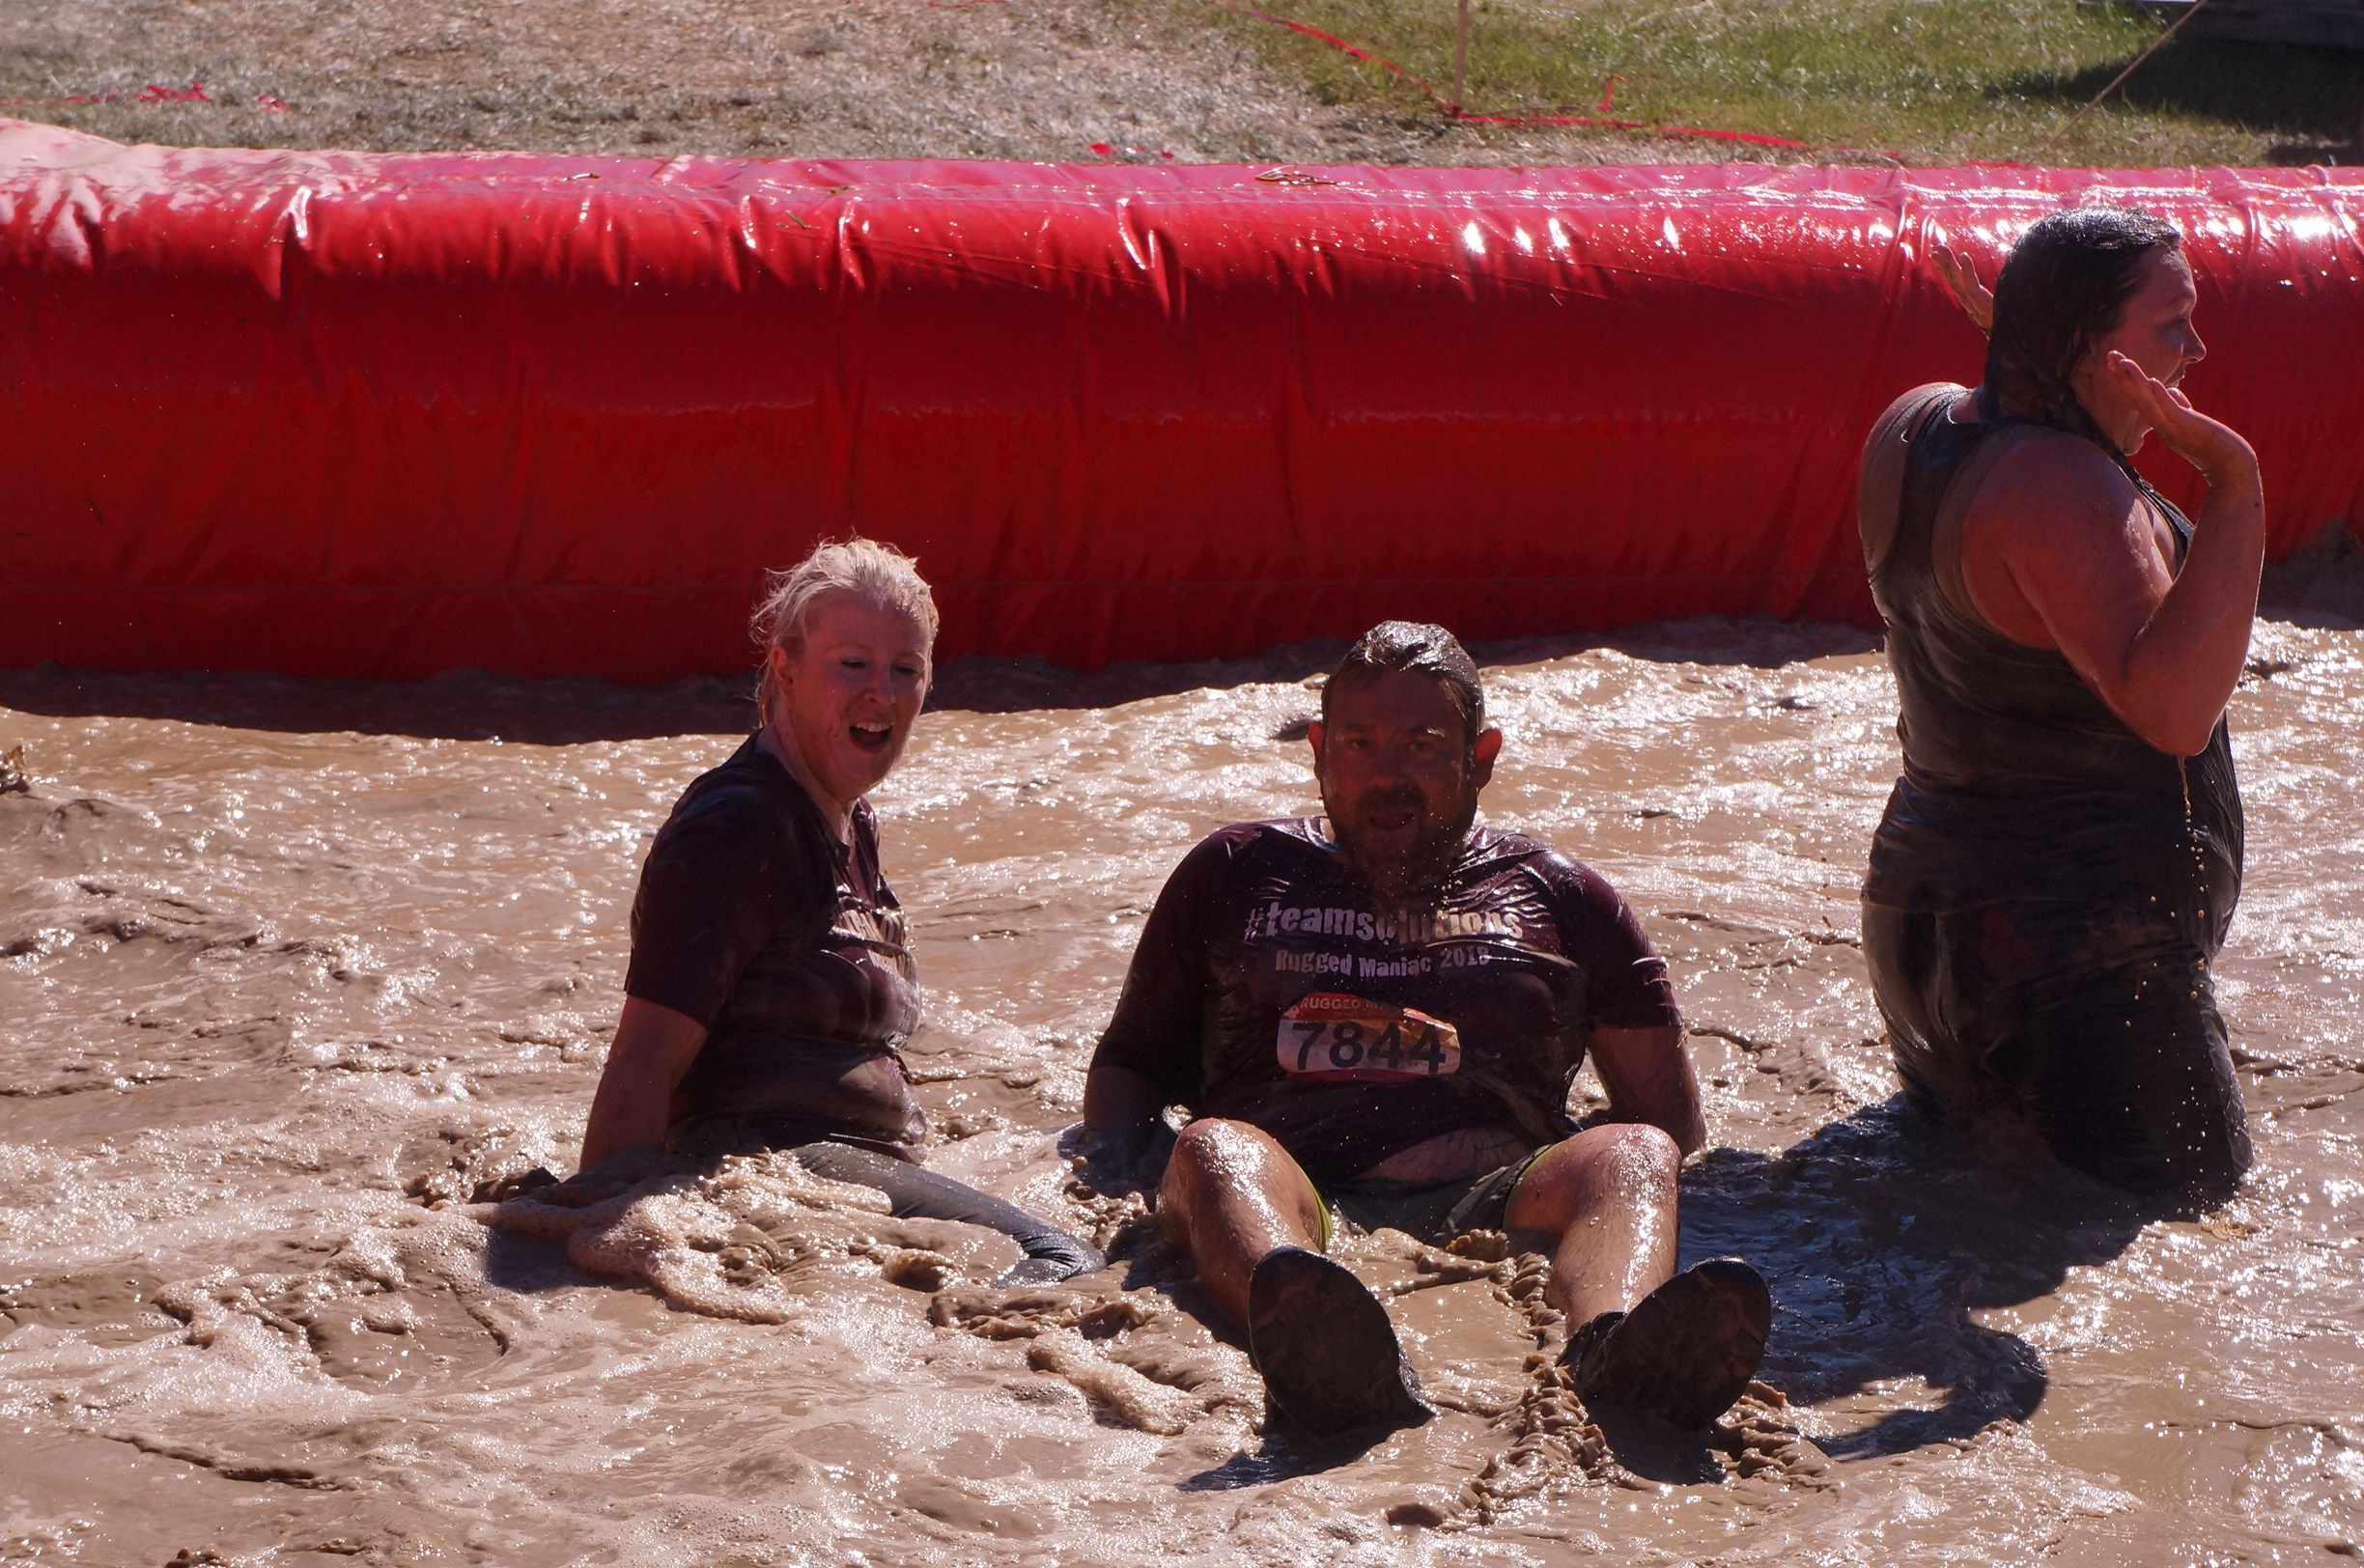 Jessica and Shane in the mud, enjoying themselves.